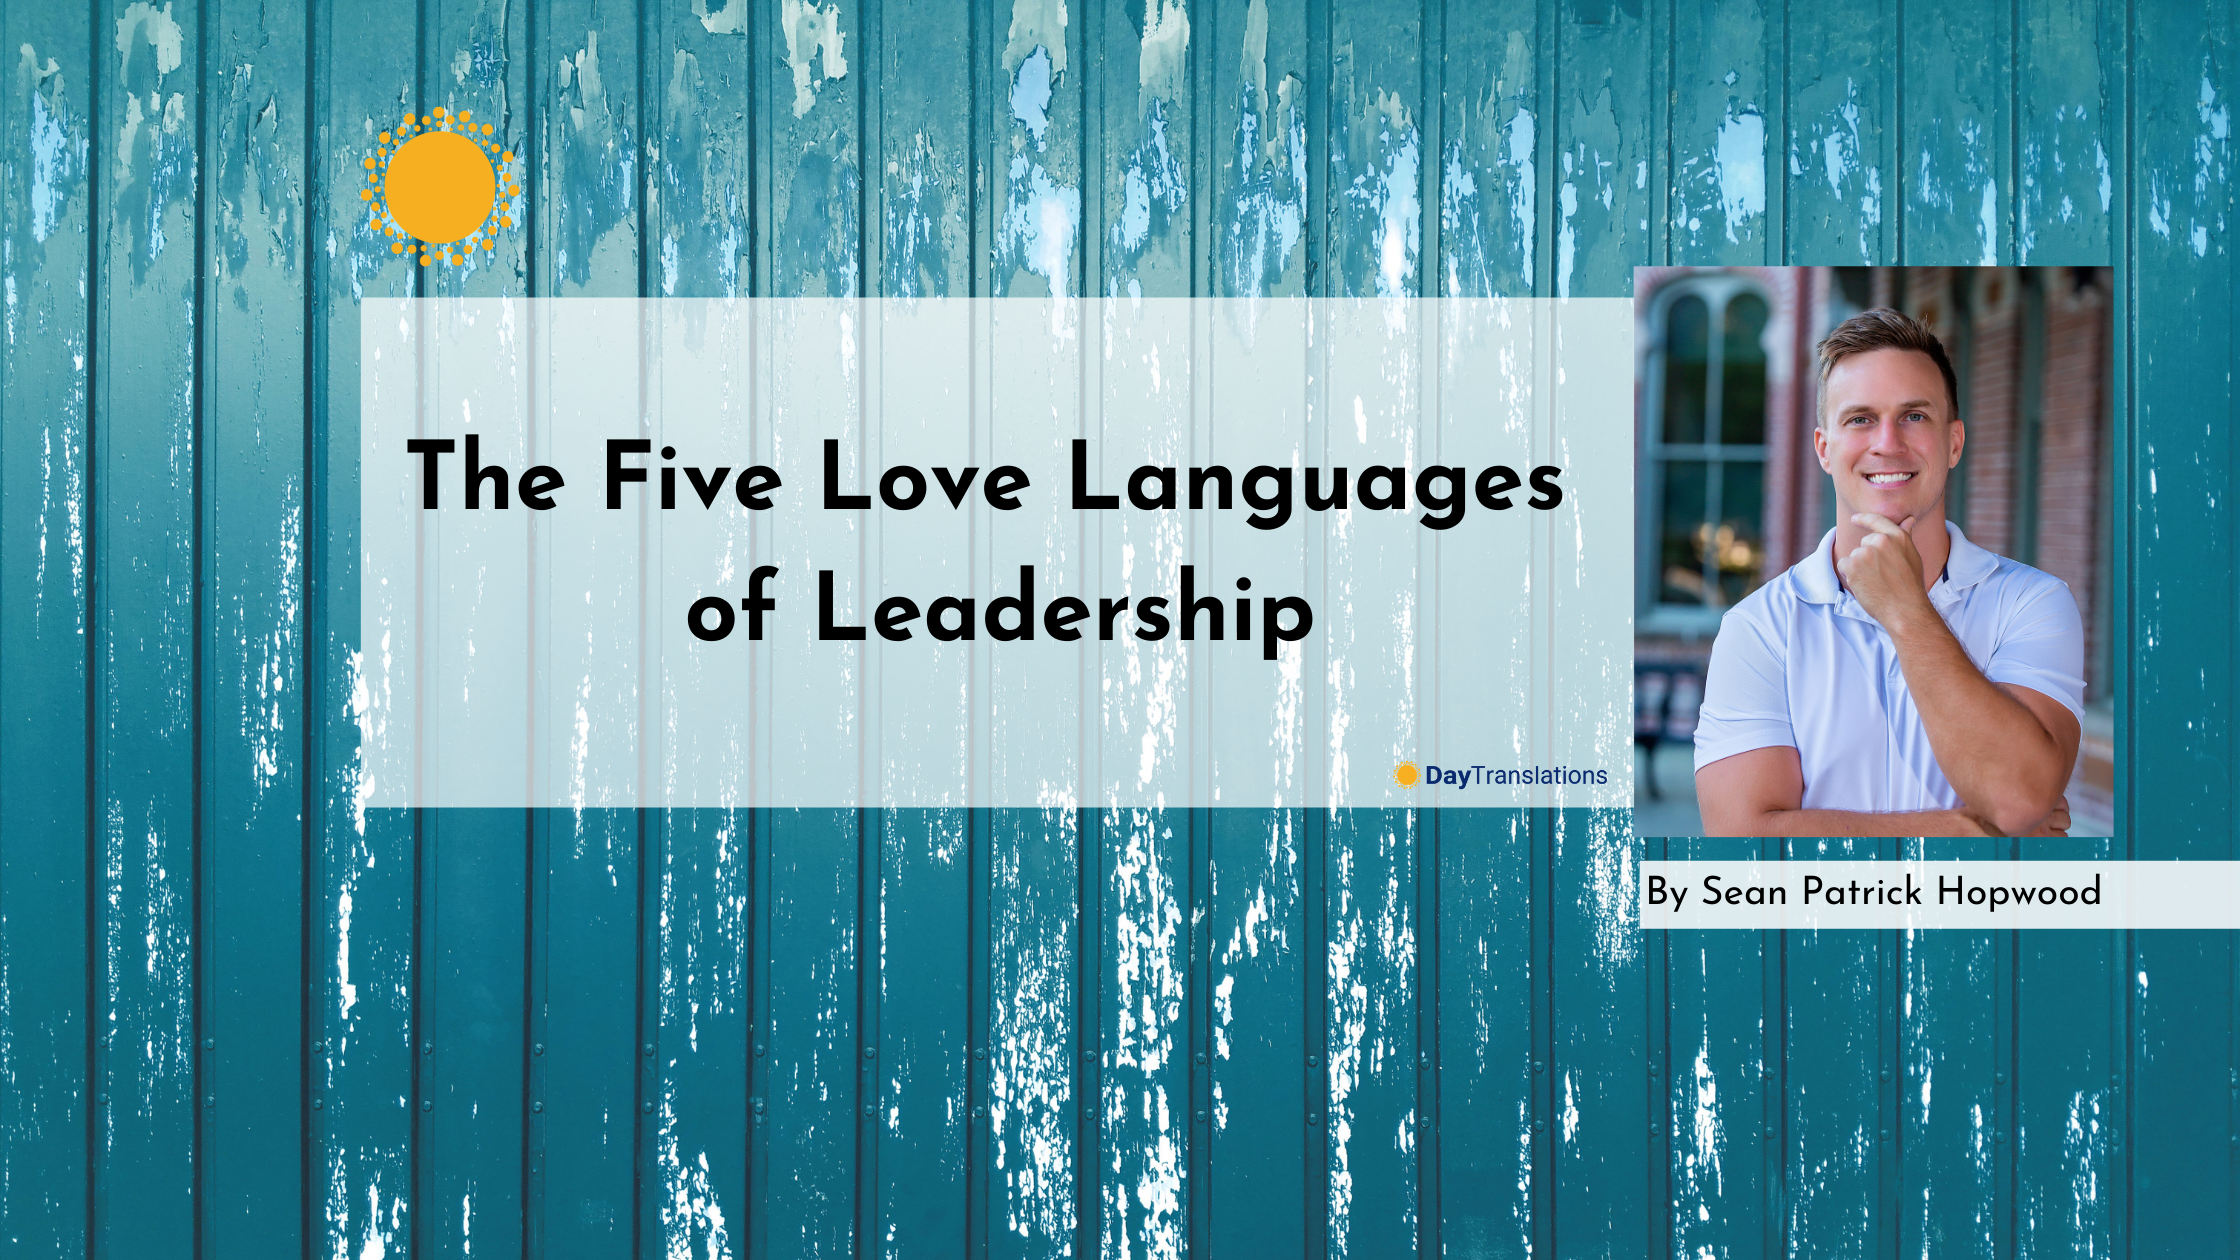 The Five Love Languages of Leadership